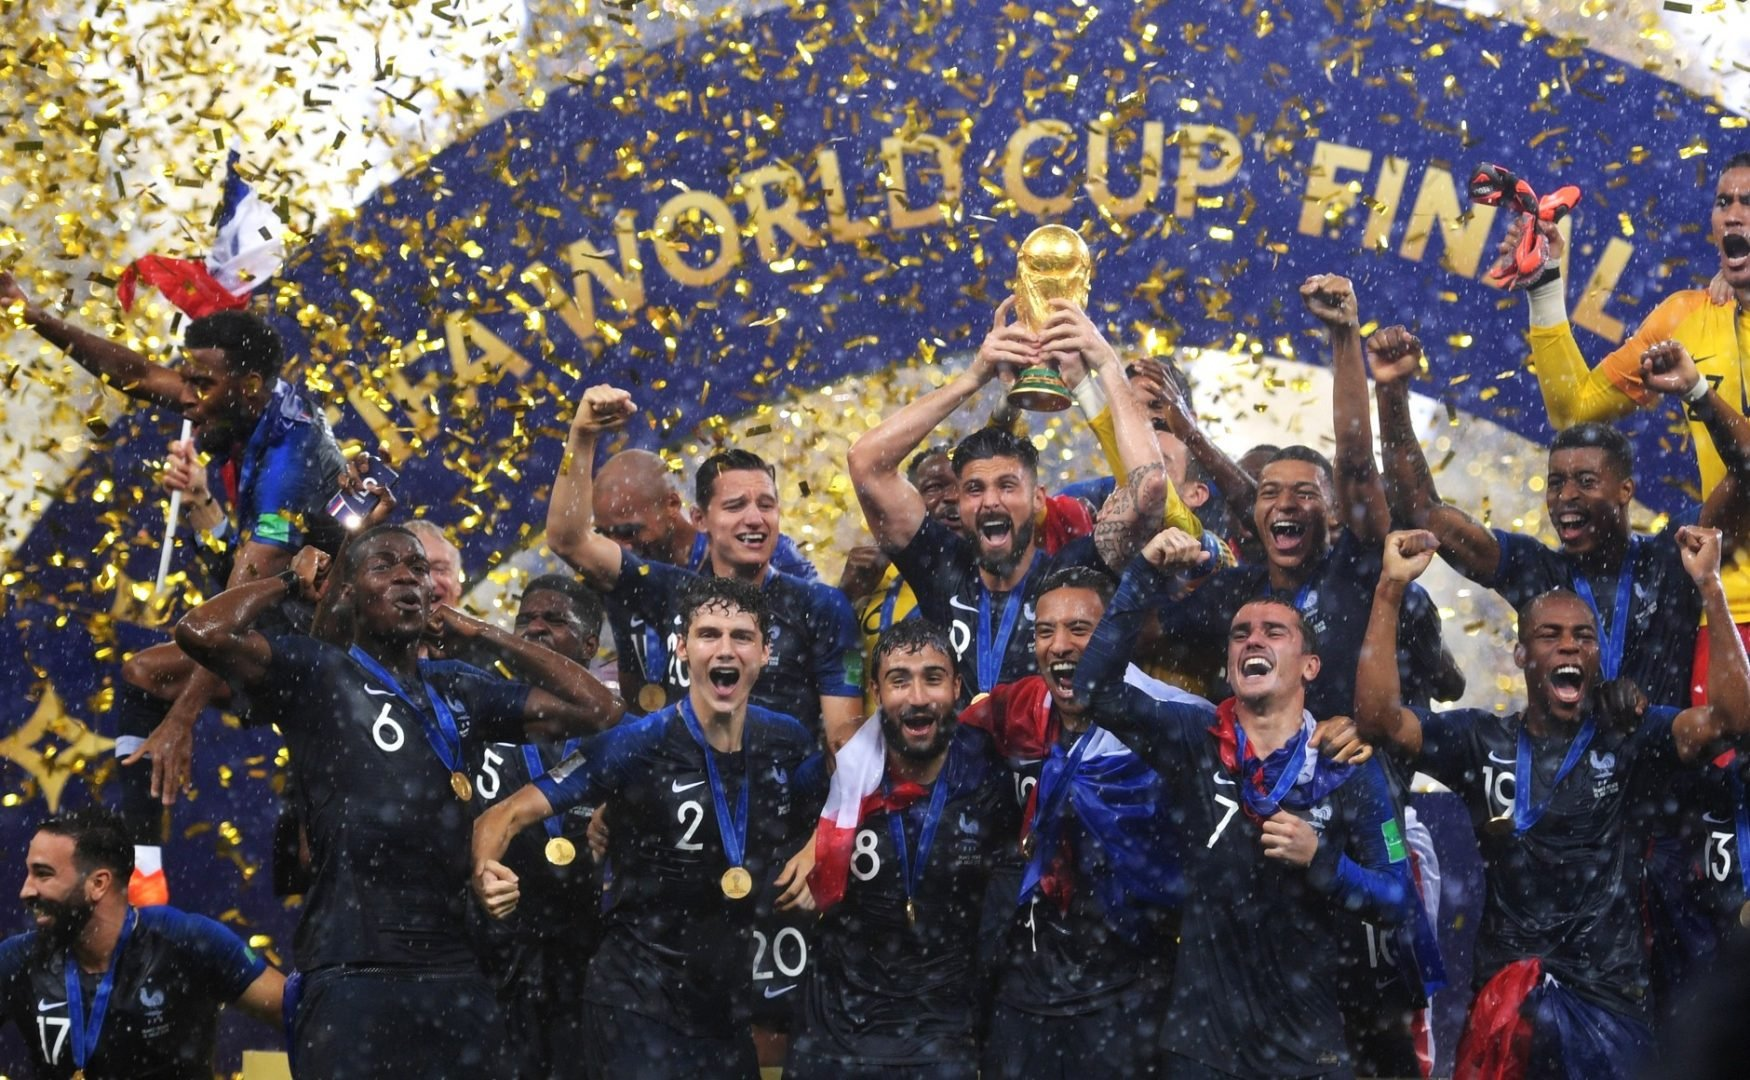 France champion of the Football World Cup Russia 2018 - Summer camps in France 2020 | Ertheo Education & Sport